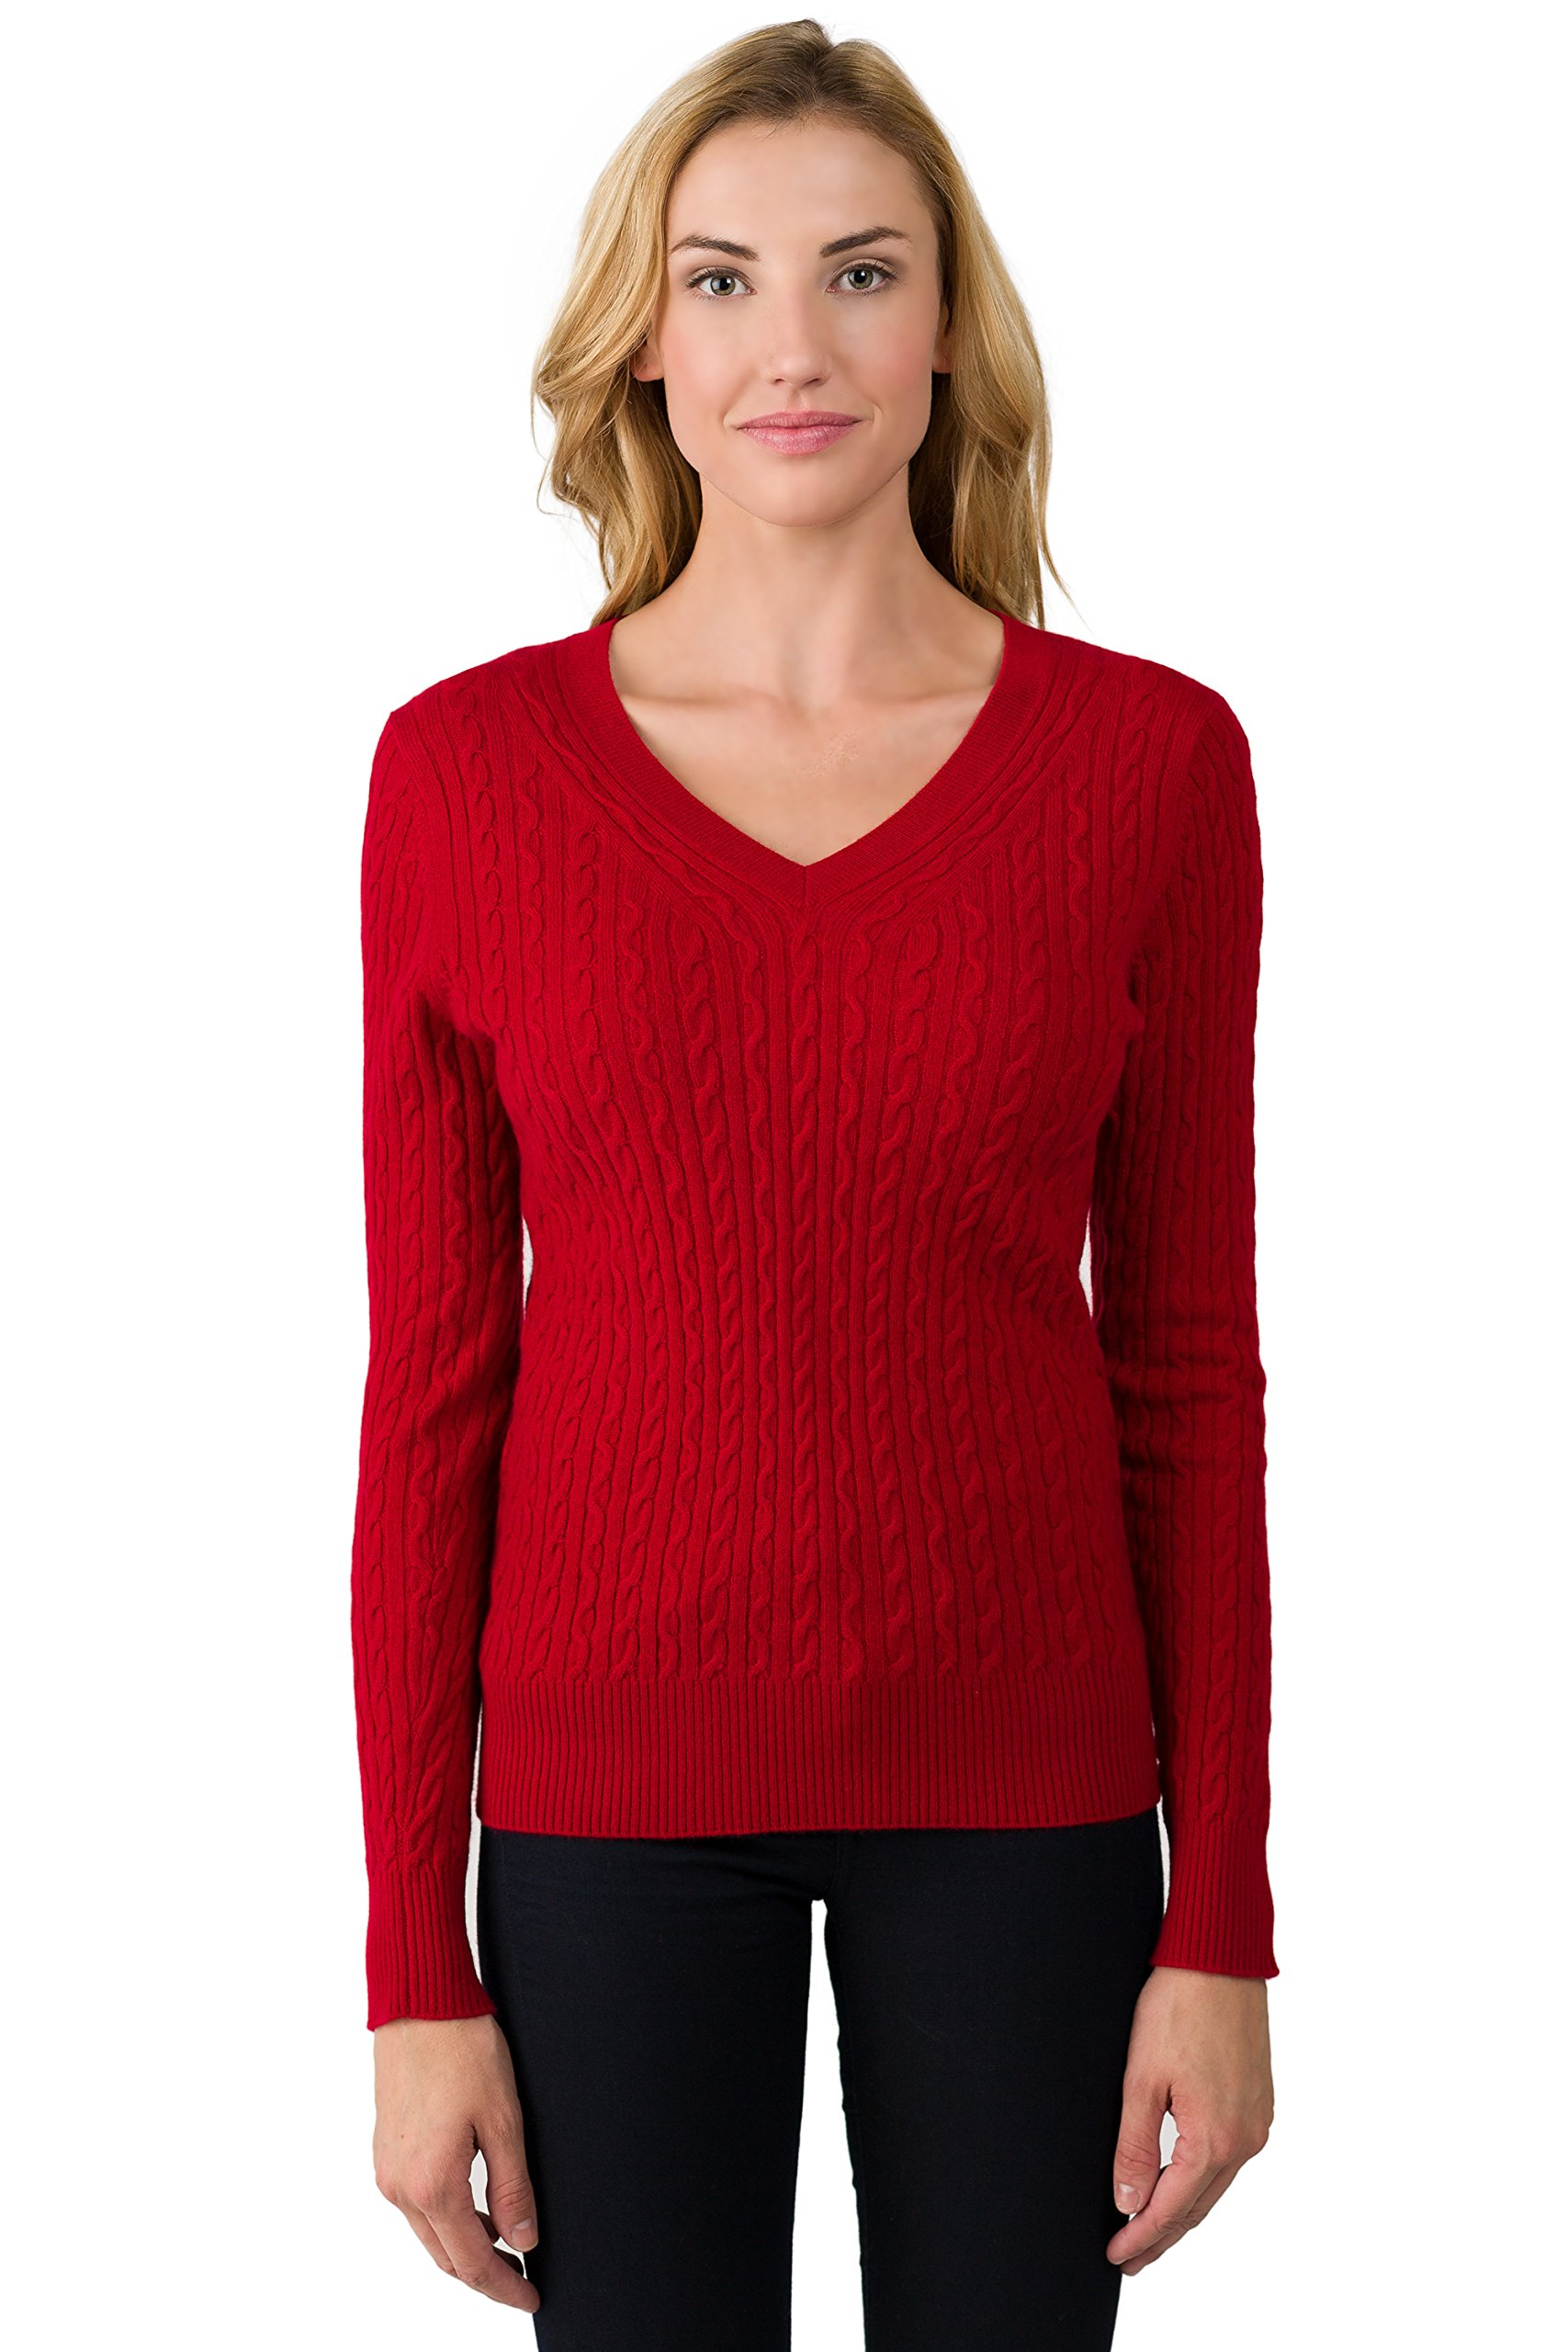 J CASHMERE Women's 100% Cashmere Long Sleeve Pullover Cable-knit V-neck Sweater Red Large